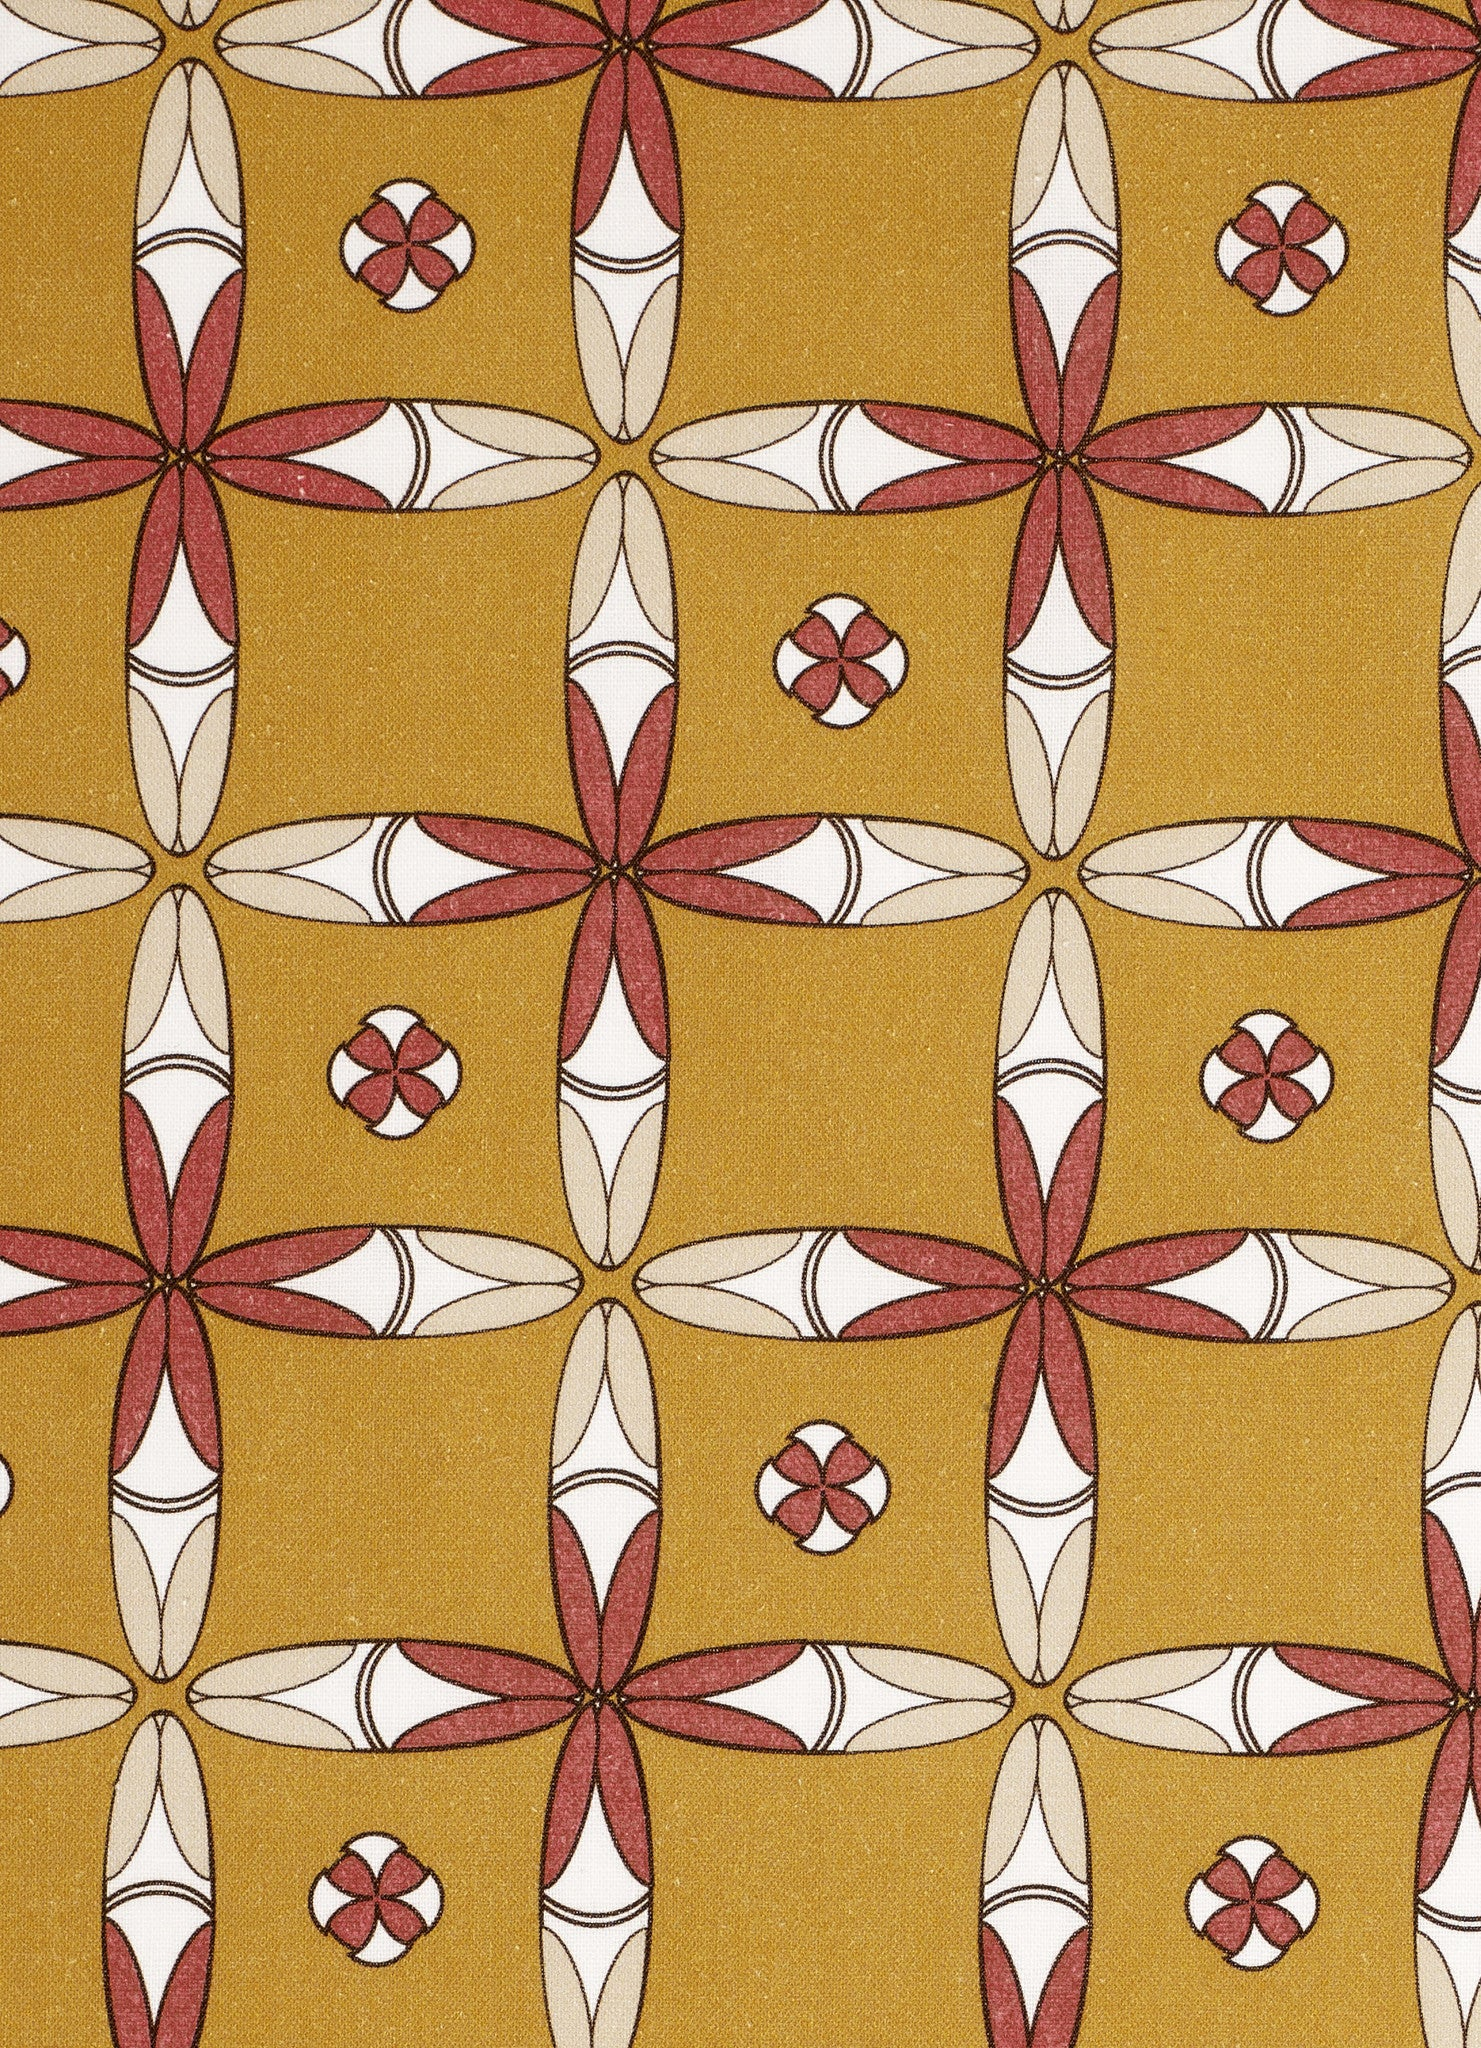 Navajo Graphic Pattern Cotton Linen & Canvas Fabric by the Yard in Mustard Gold